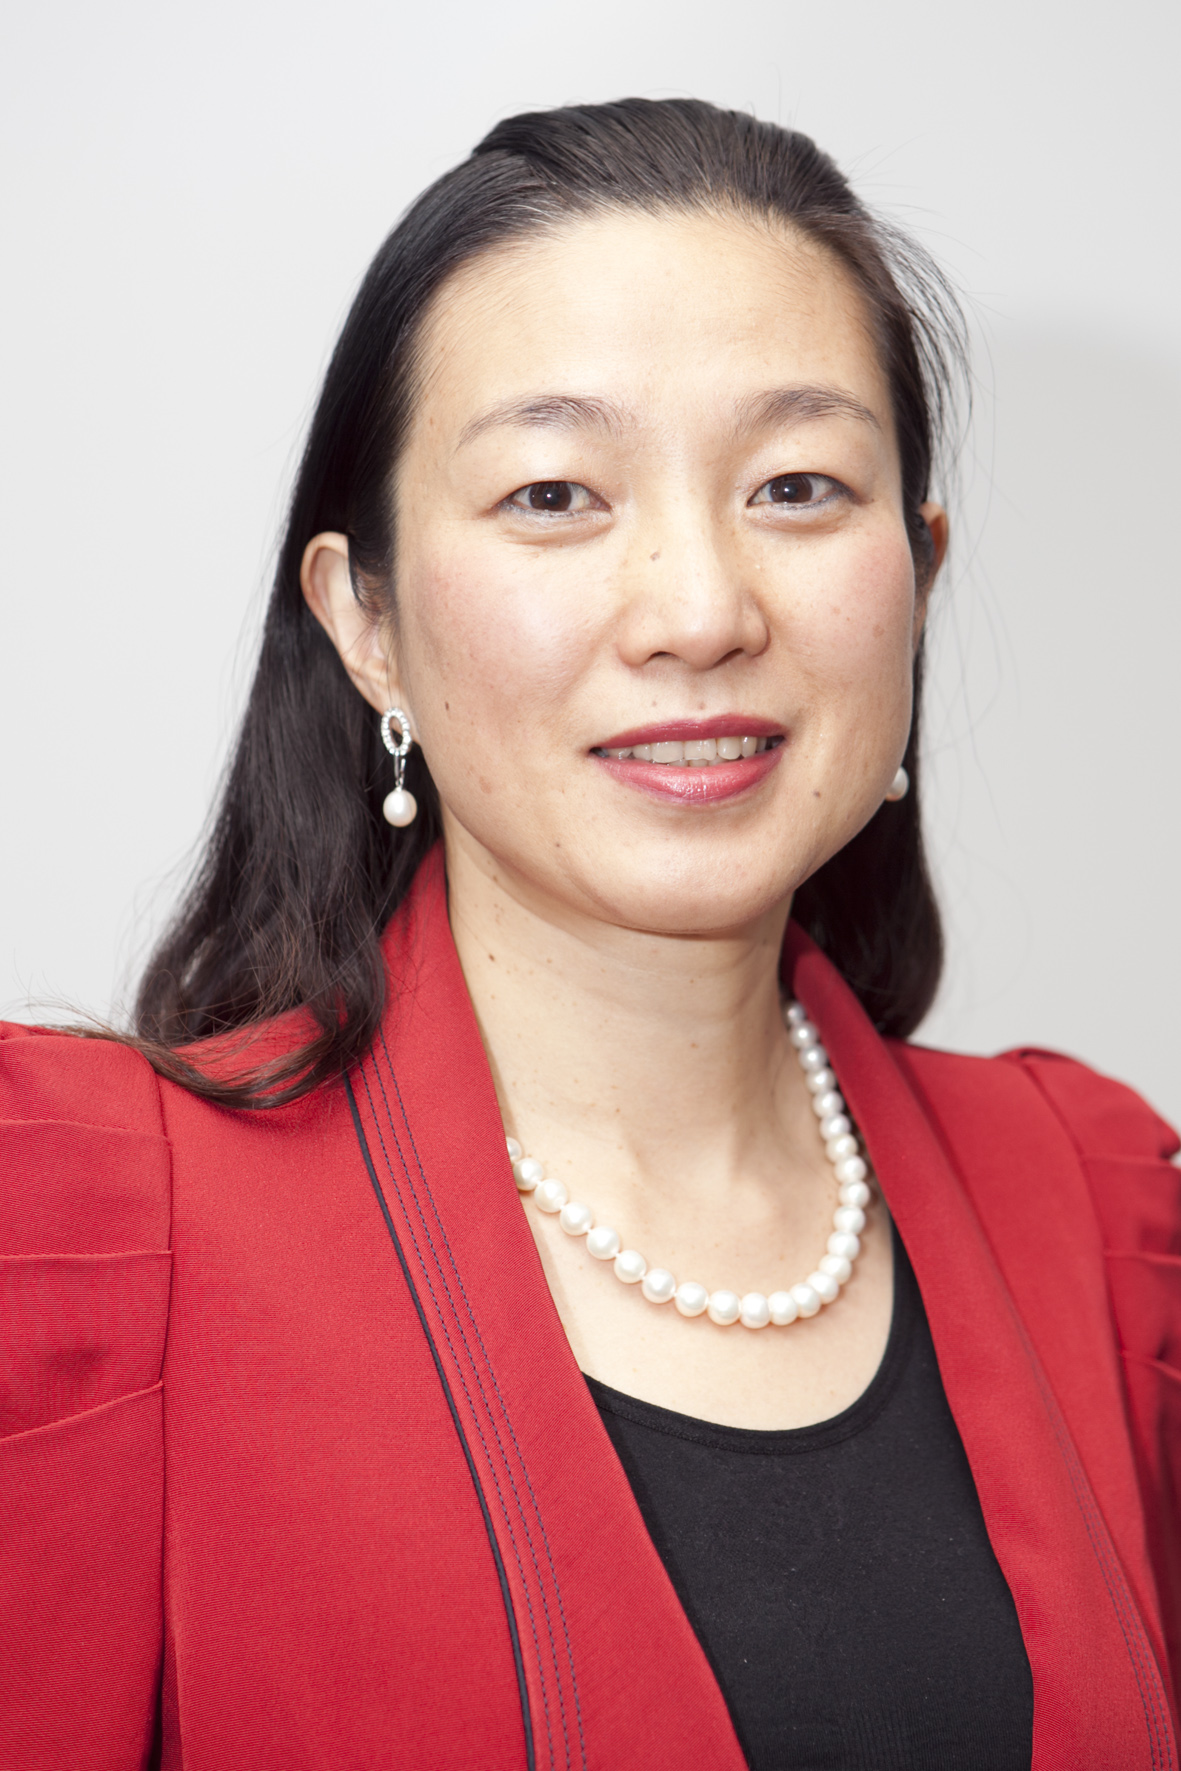 Photo of Ting Wang